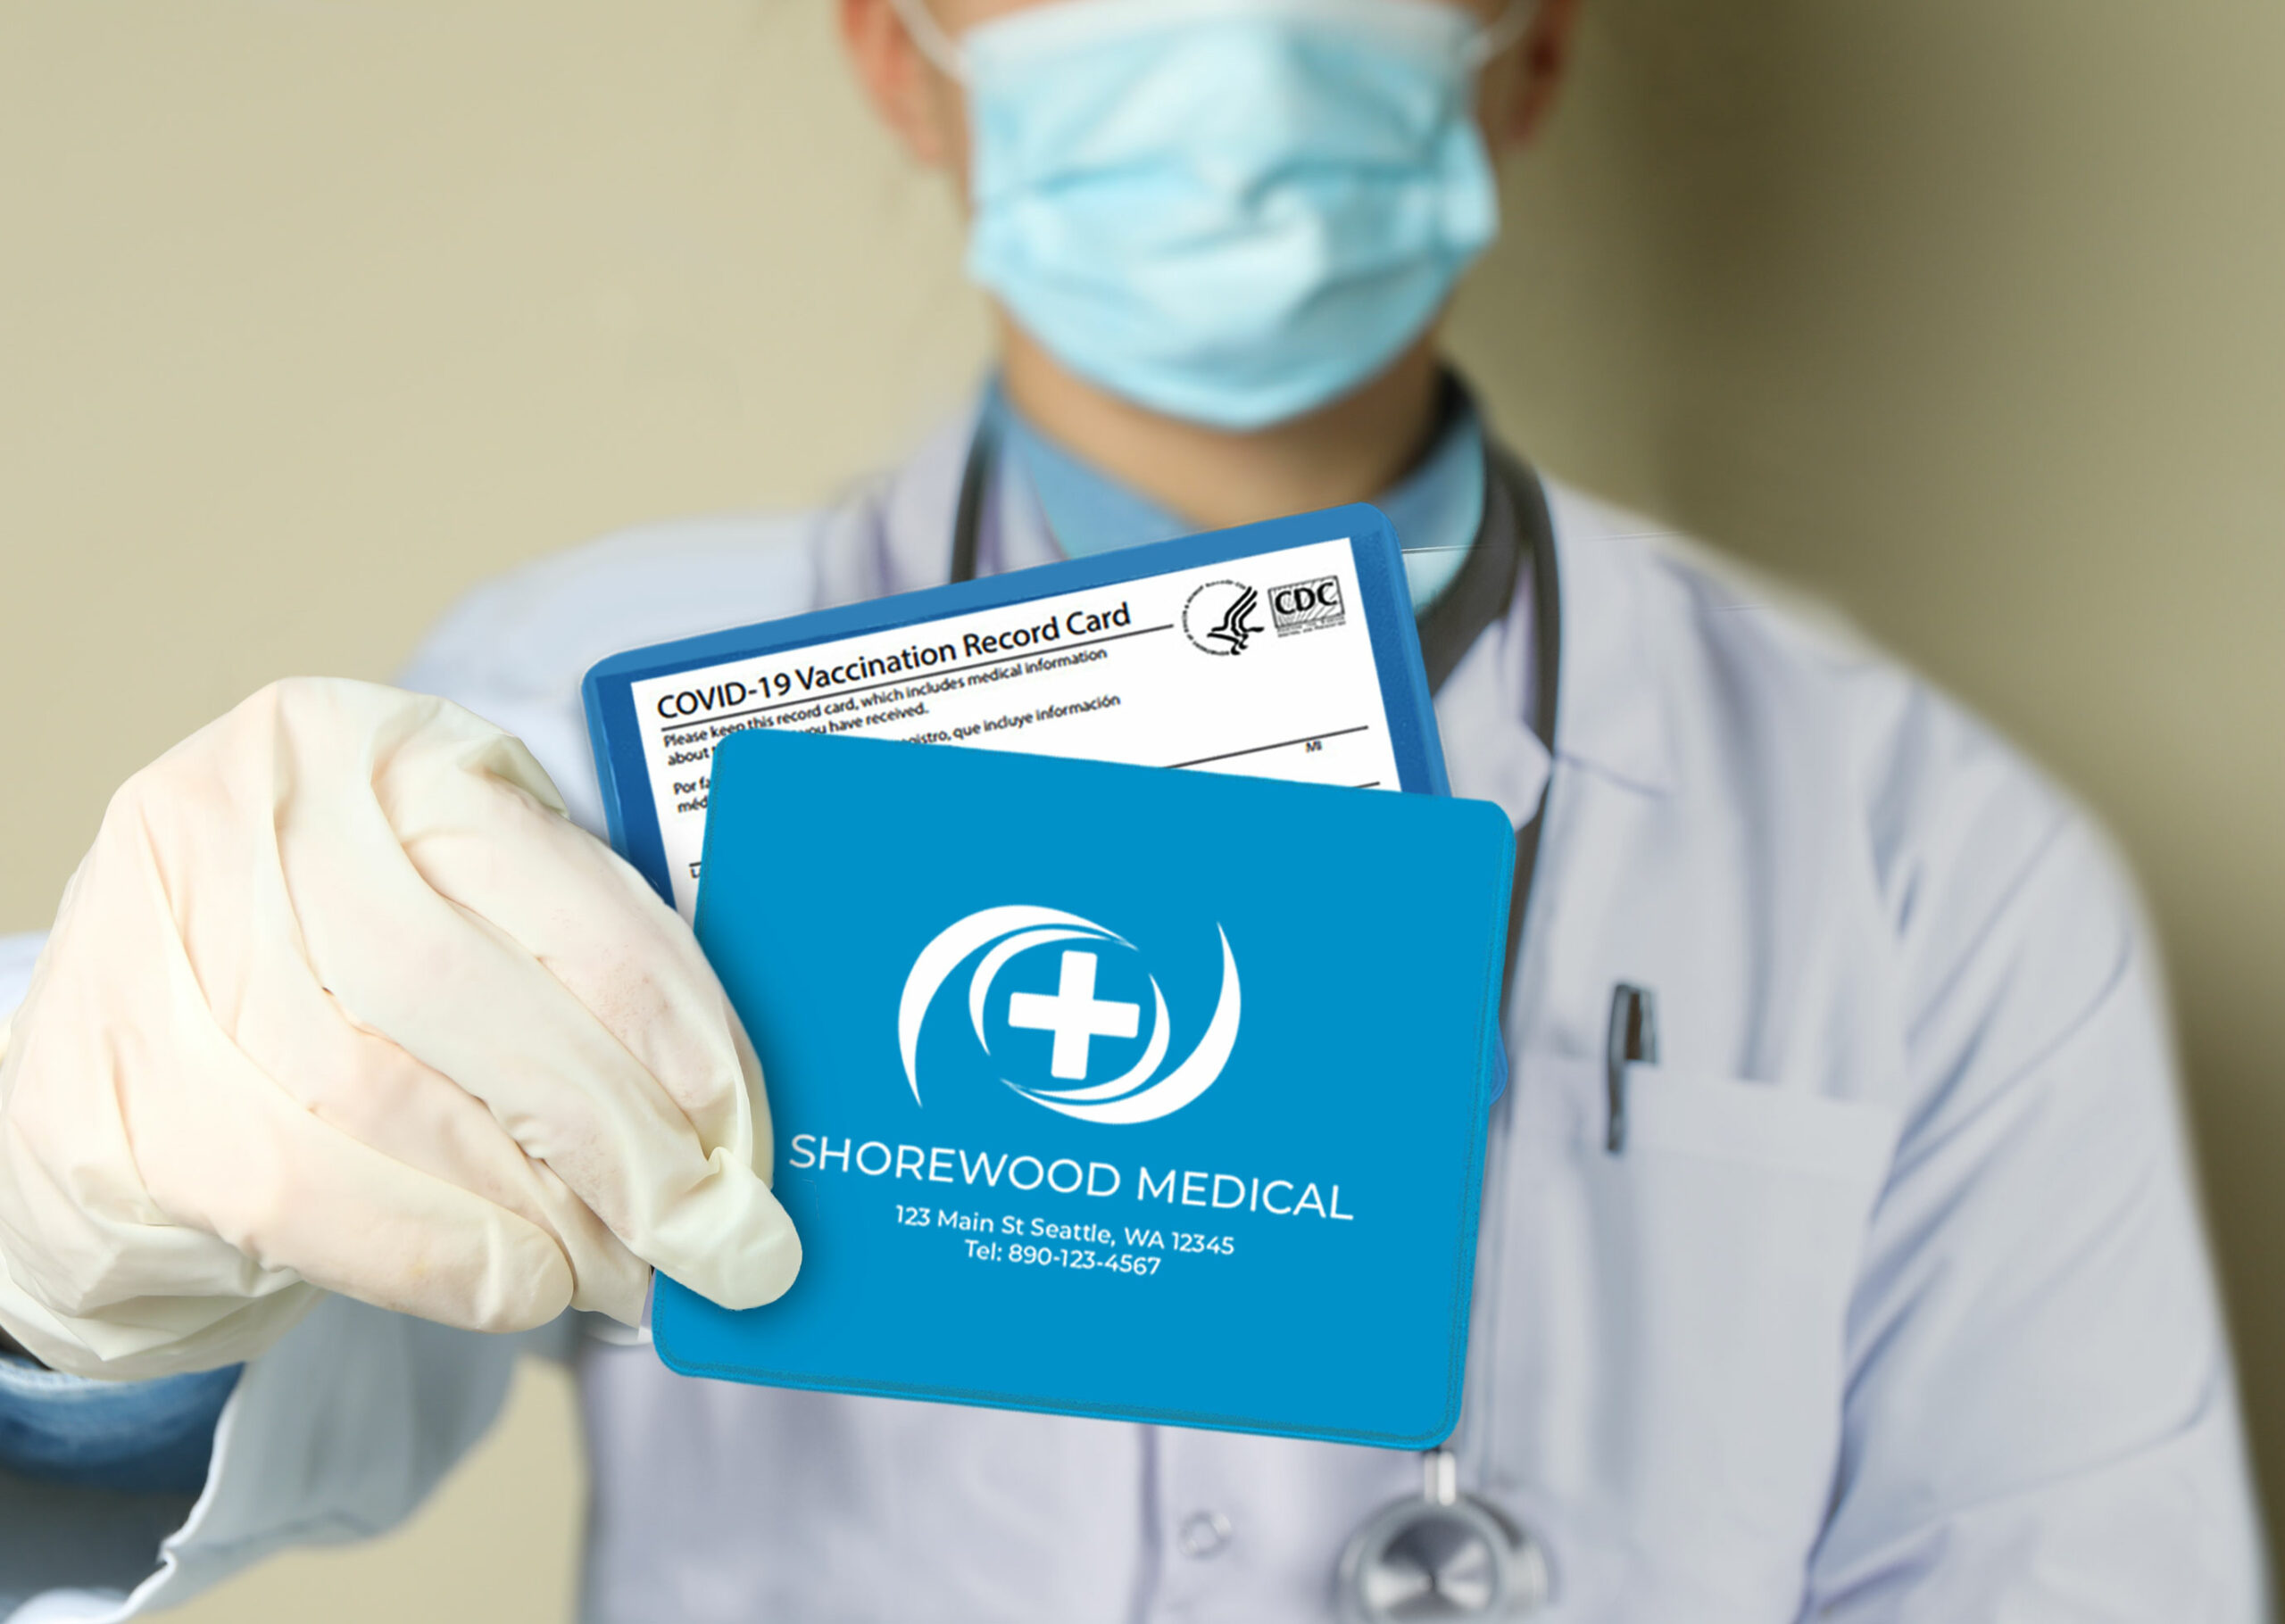 doctor holding covid vaccination card holder